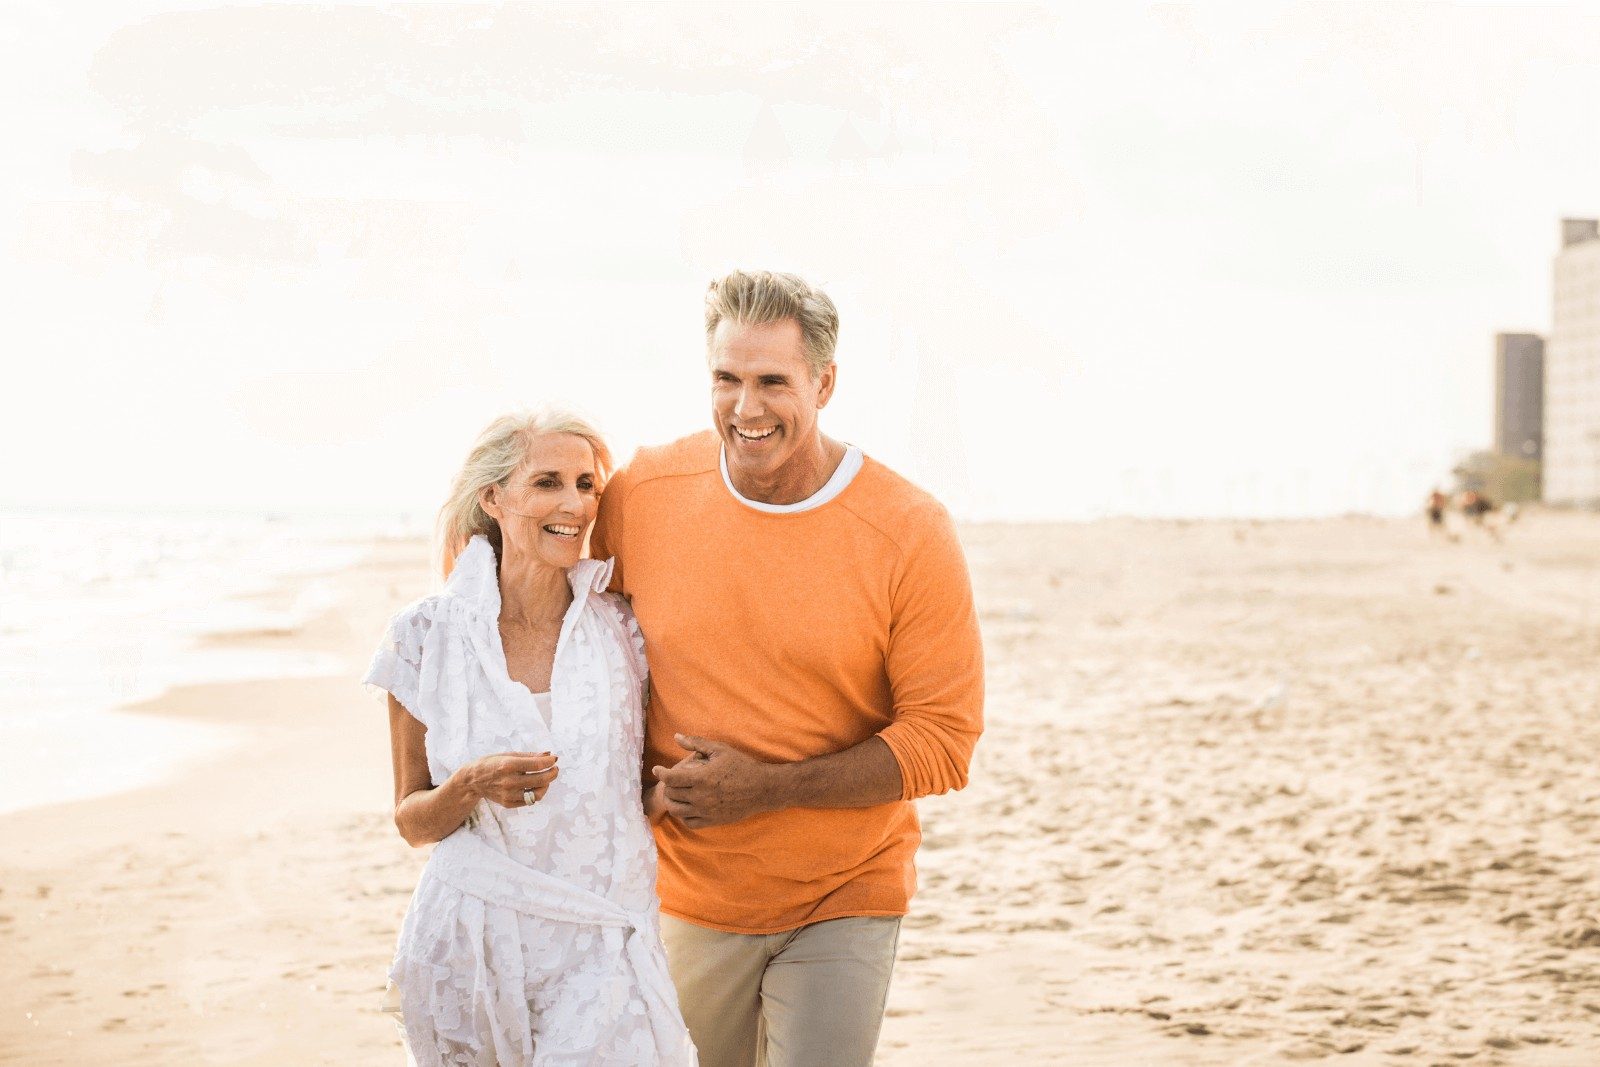 a senior couple walking down the beach, a sample of dating in your 60s